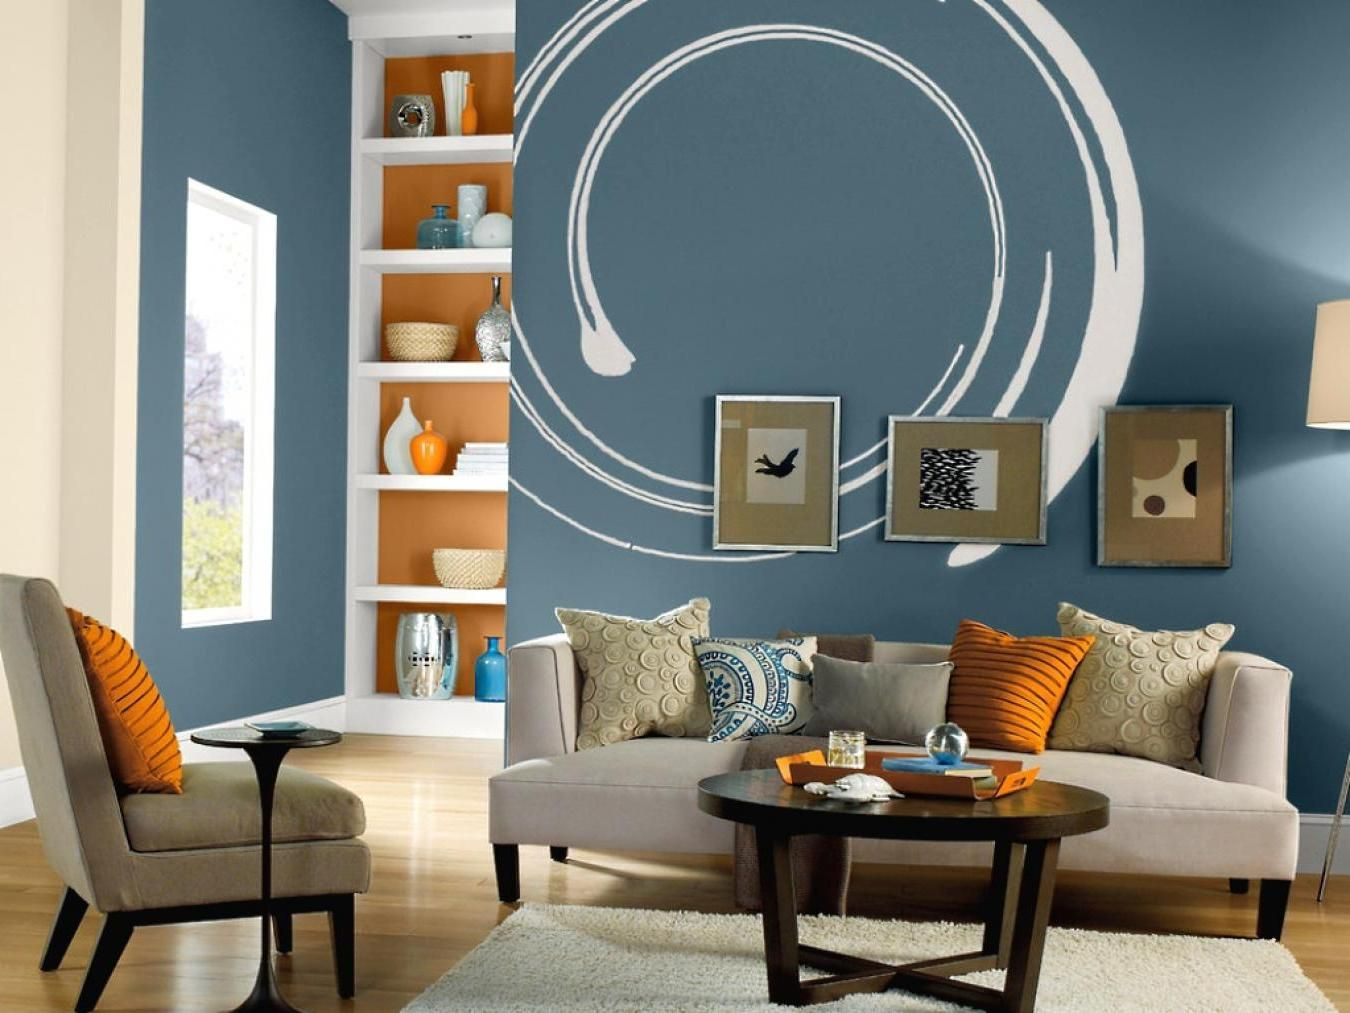 A Unique Blue Wall Paint With White Circle For Terrific Living Room